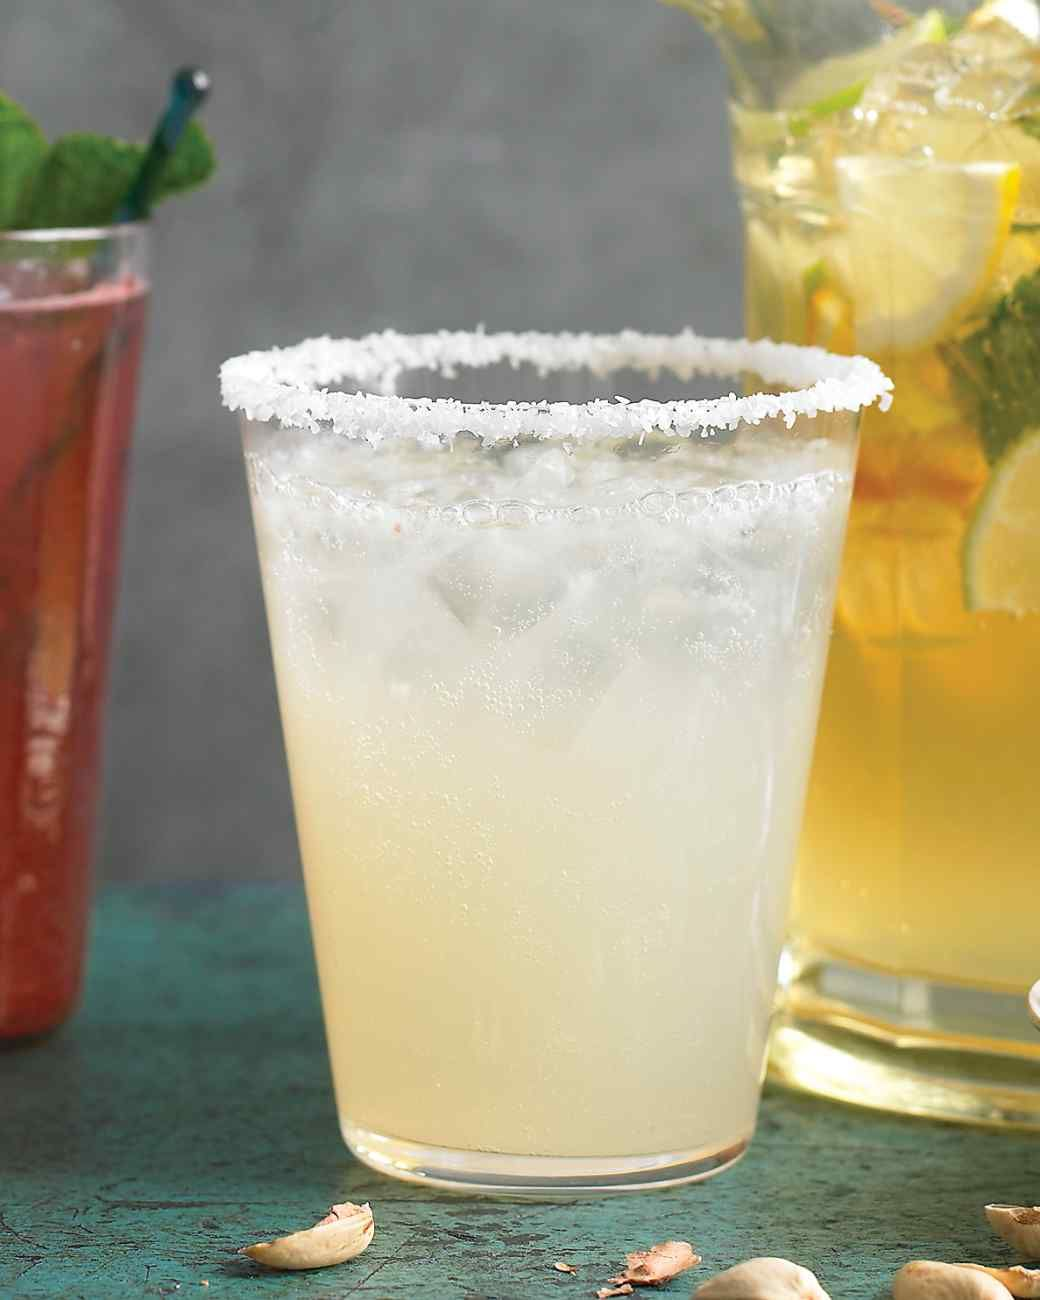 Raise a glass to sunny days and balmy nights with this refreshing grapefruit-and-vodka cocktail, made with a Simple Syrup you can keep on hand in the fridge.